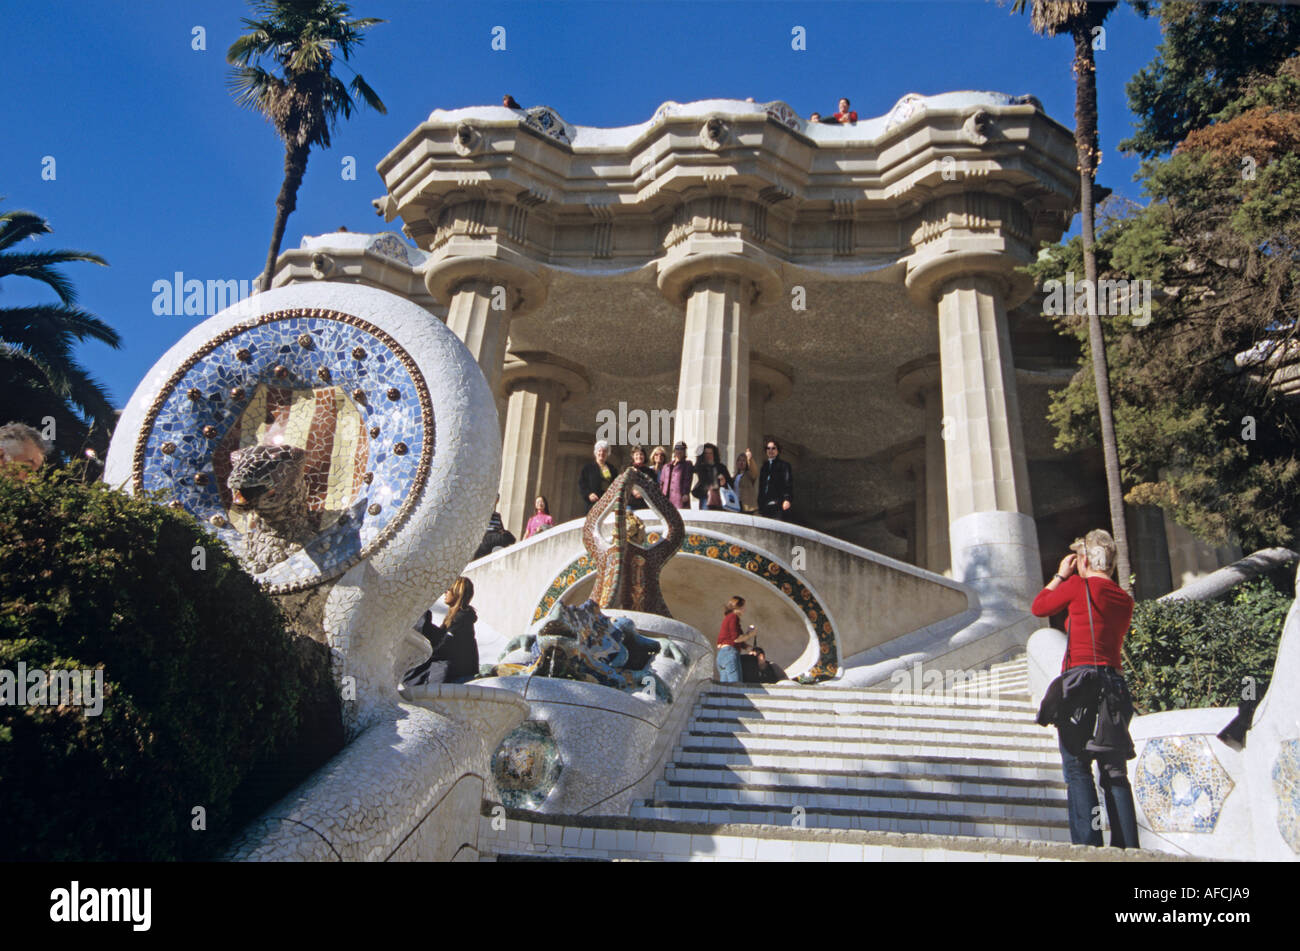 In Güell Park created by Antoni Gaudí a stairway rises to the pillared Hypostyle hall - Stock Image